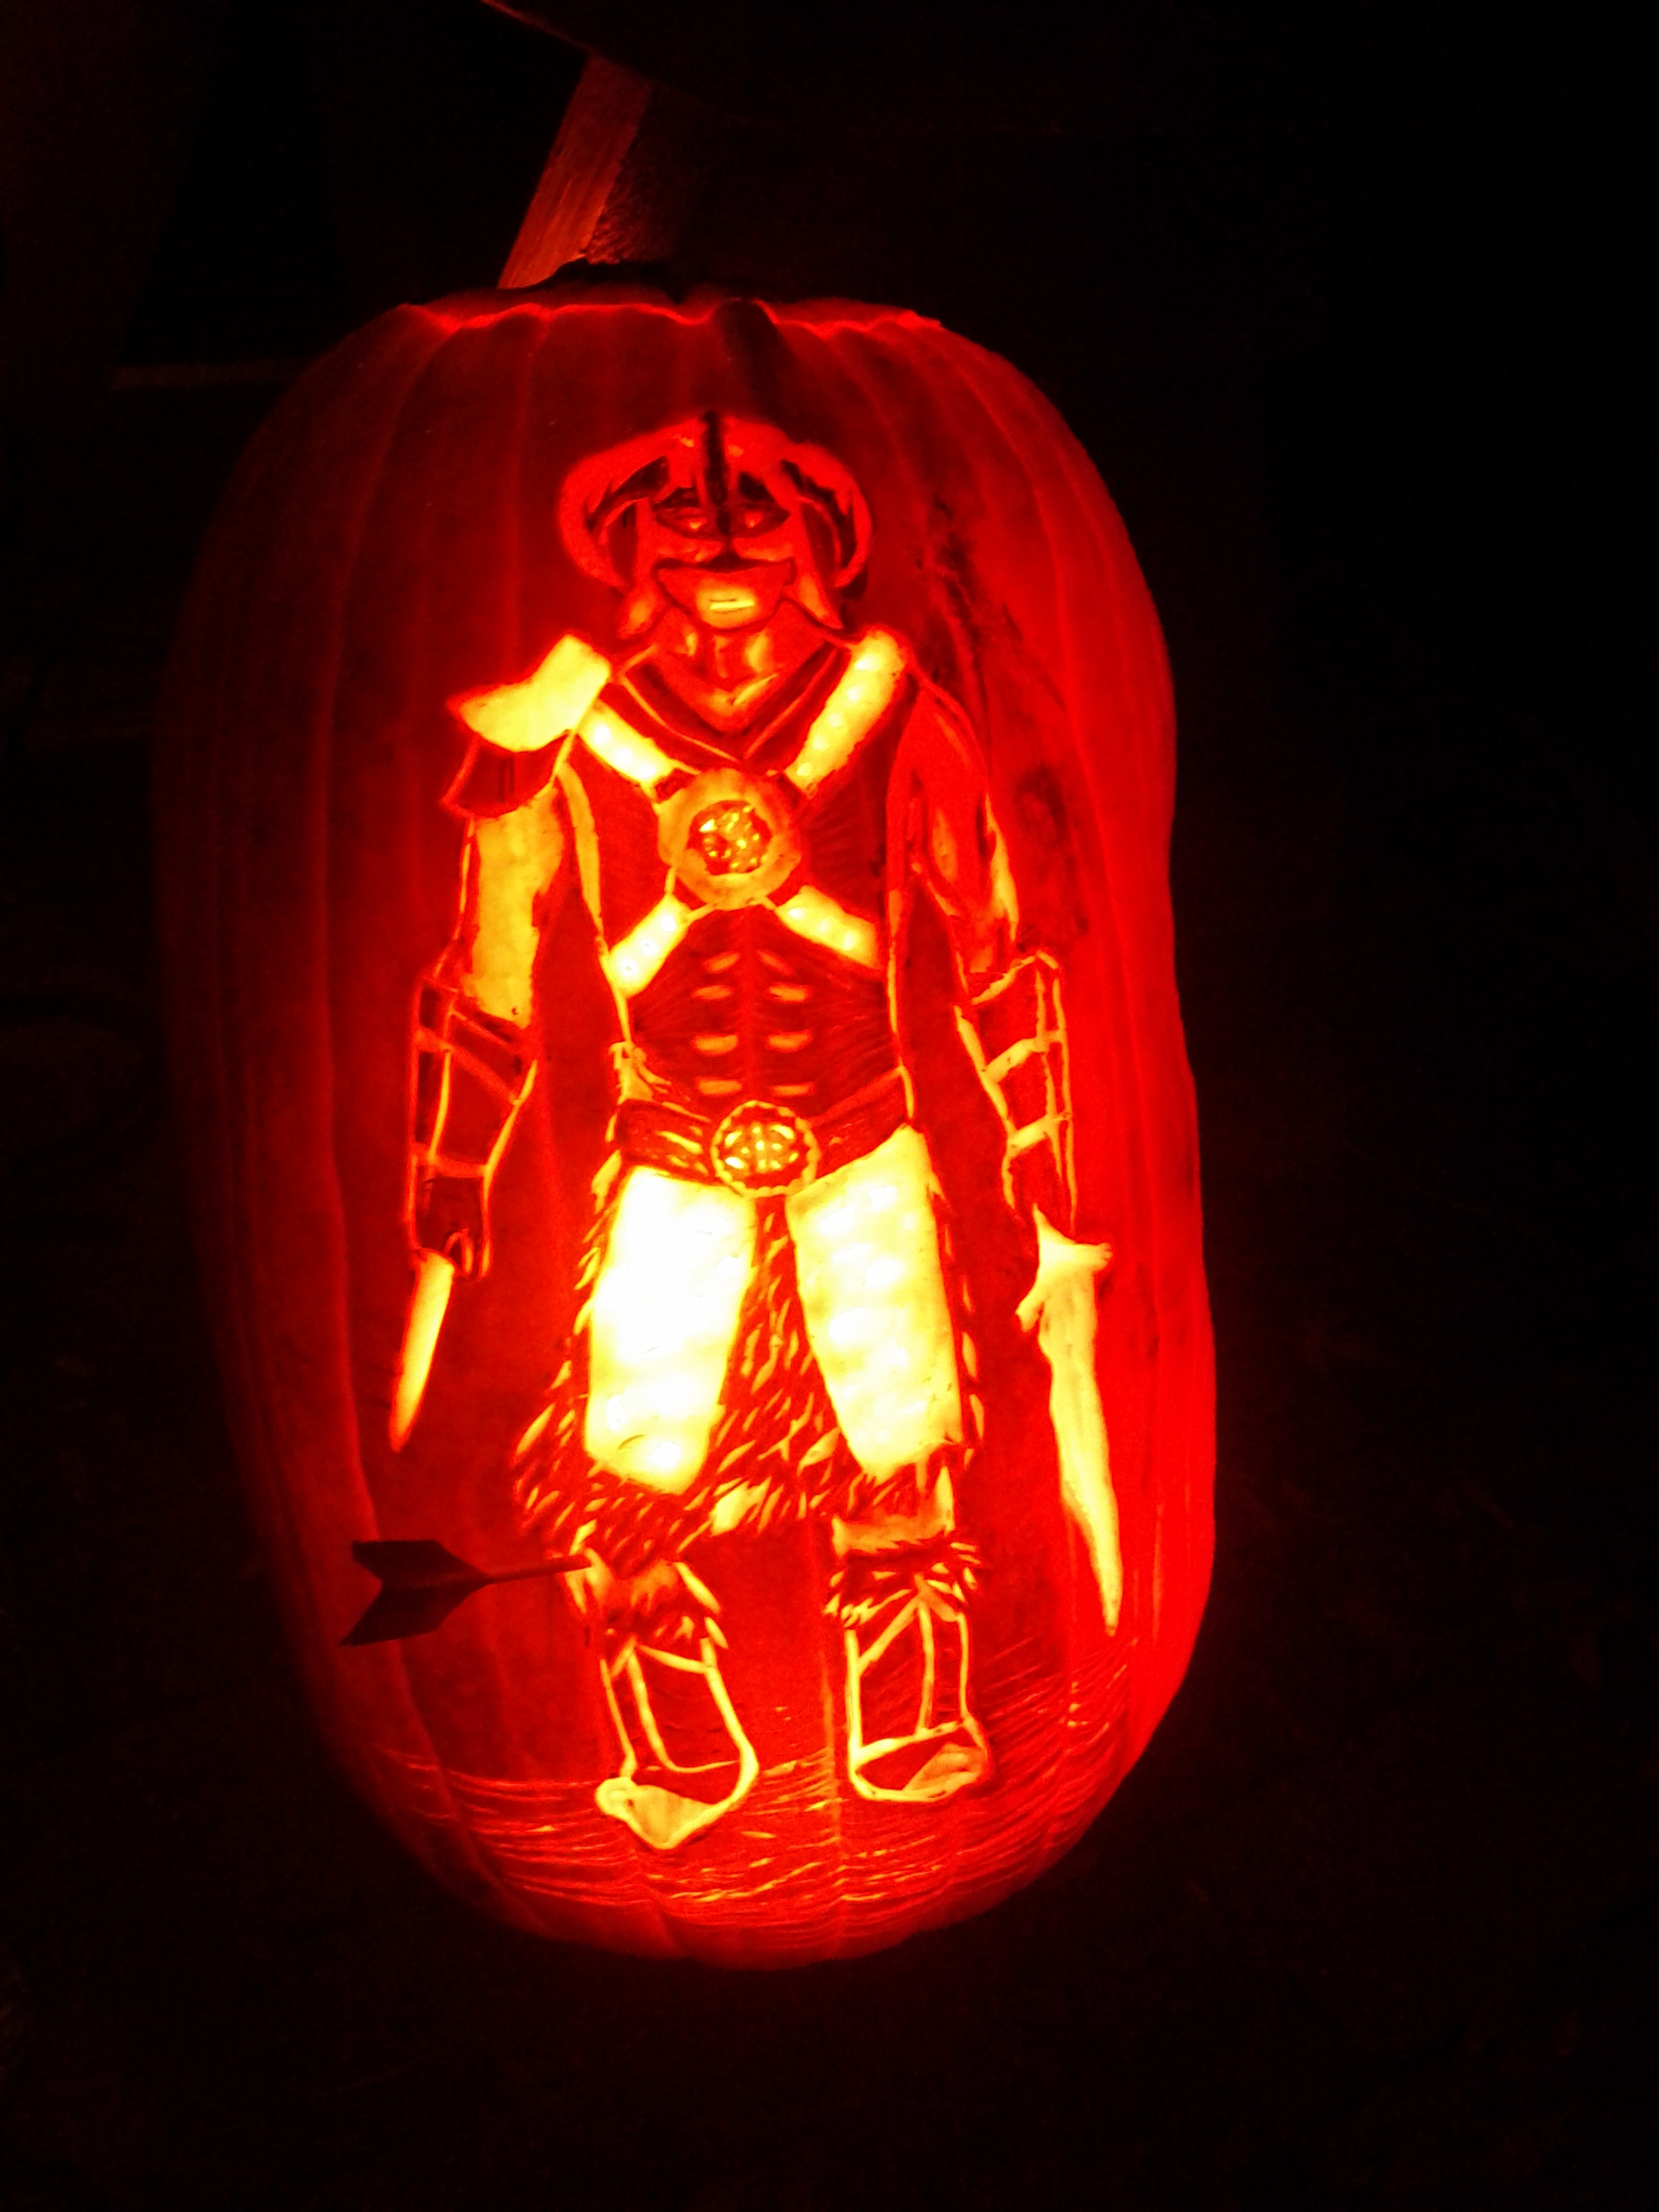 Skyrim pumpkin drawn in and quartered